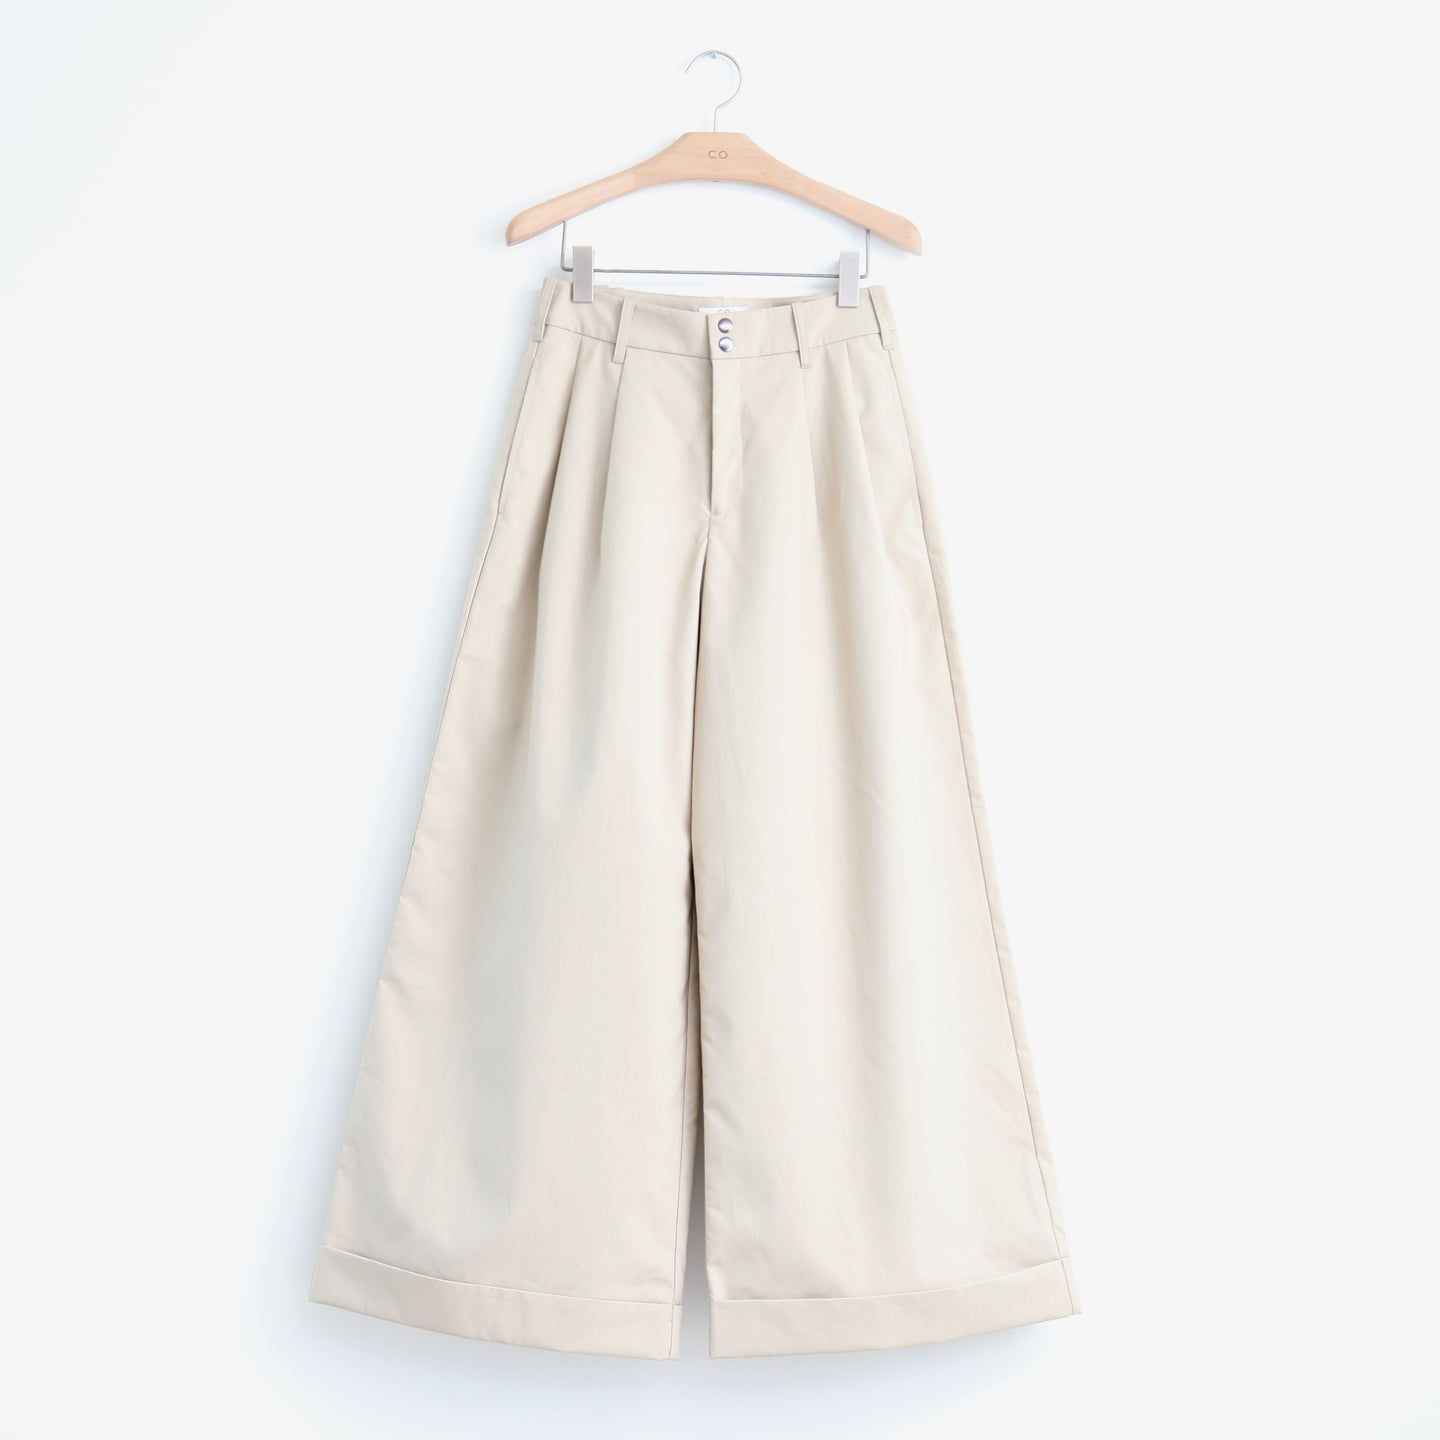 Wide leg pleated pant with cuff hem in tan bonded cotton - CO